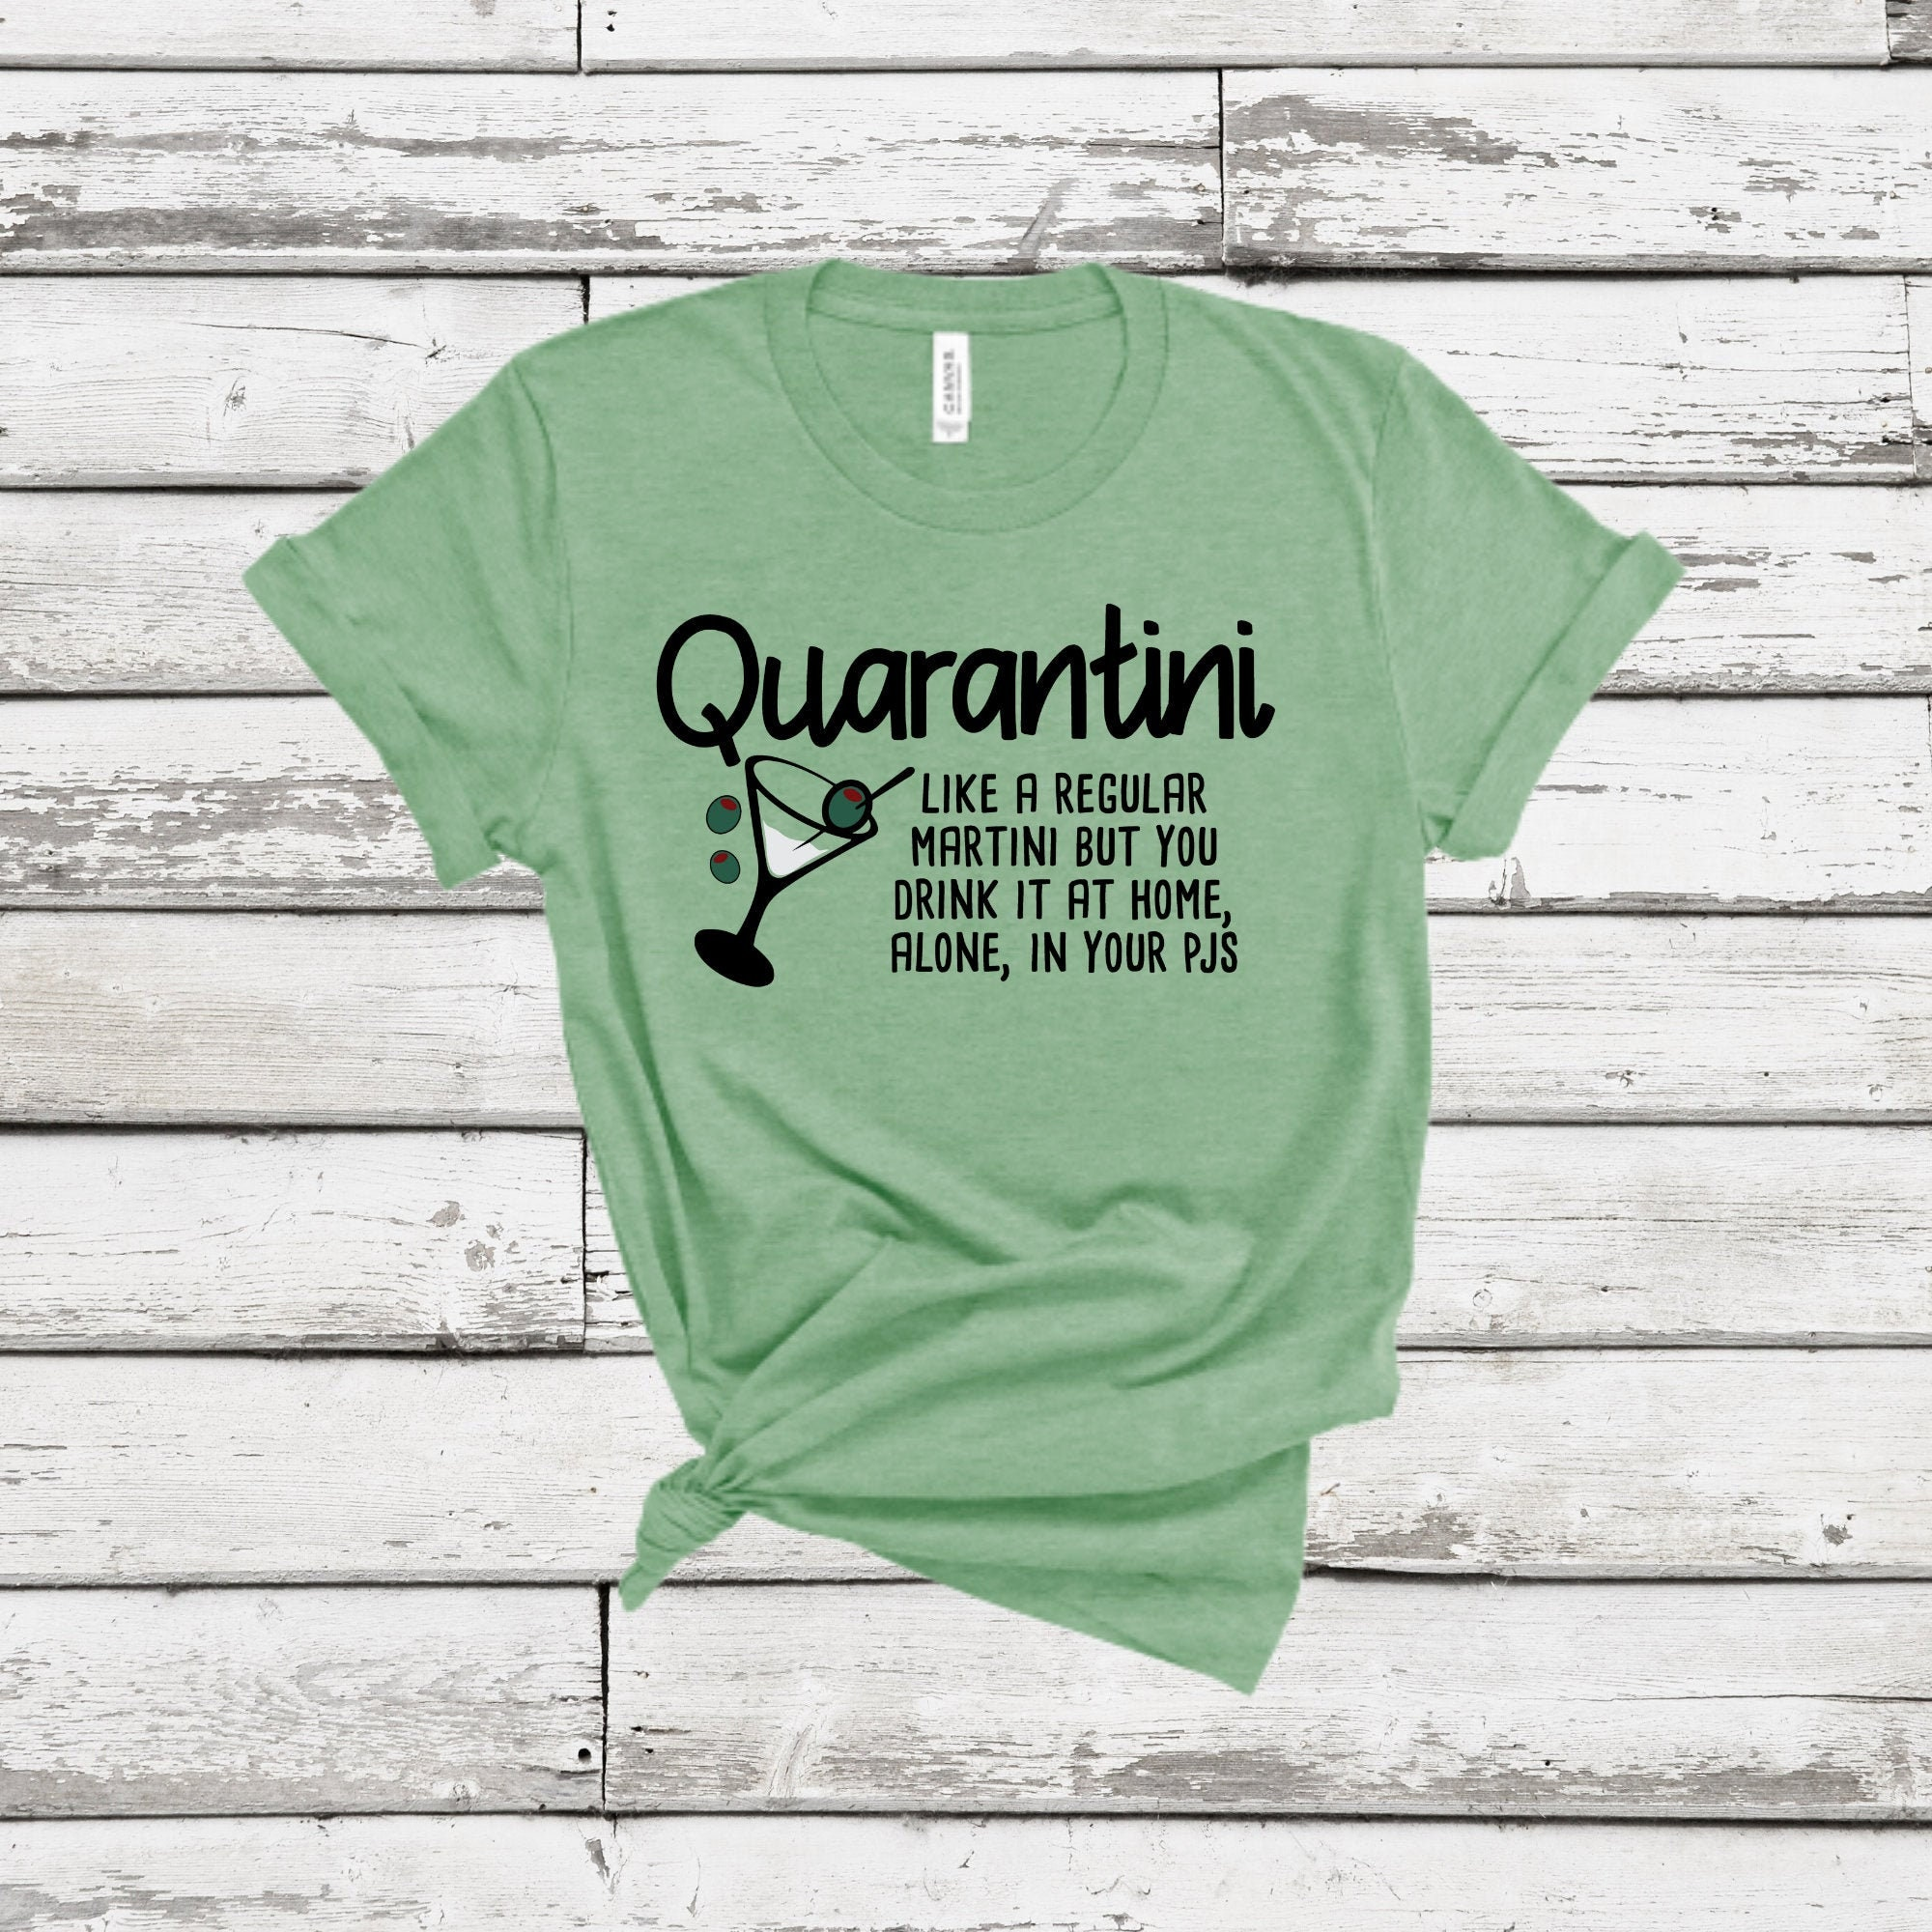 Quarantini - Like a Regular Martini but you drink it at home alone, in your PJ's t-shirt